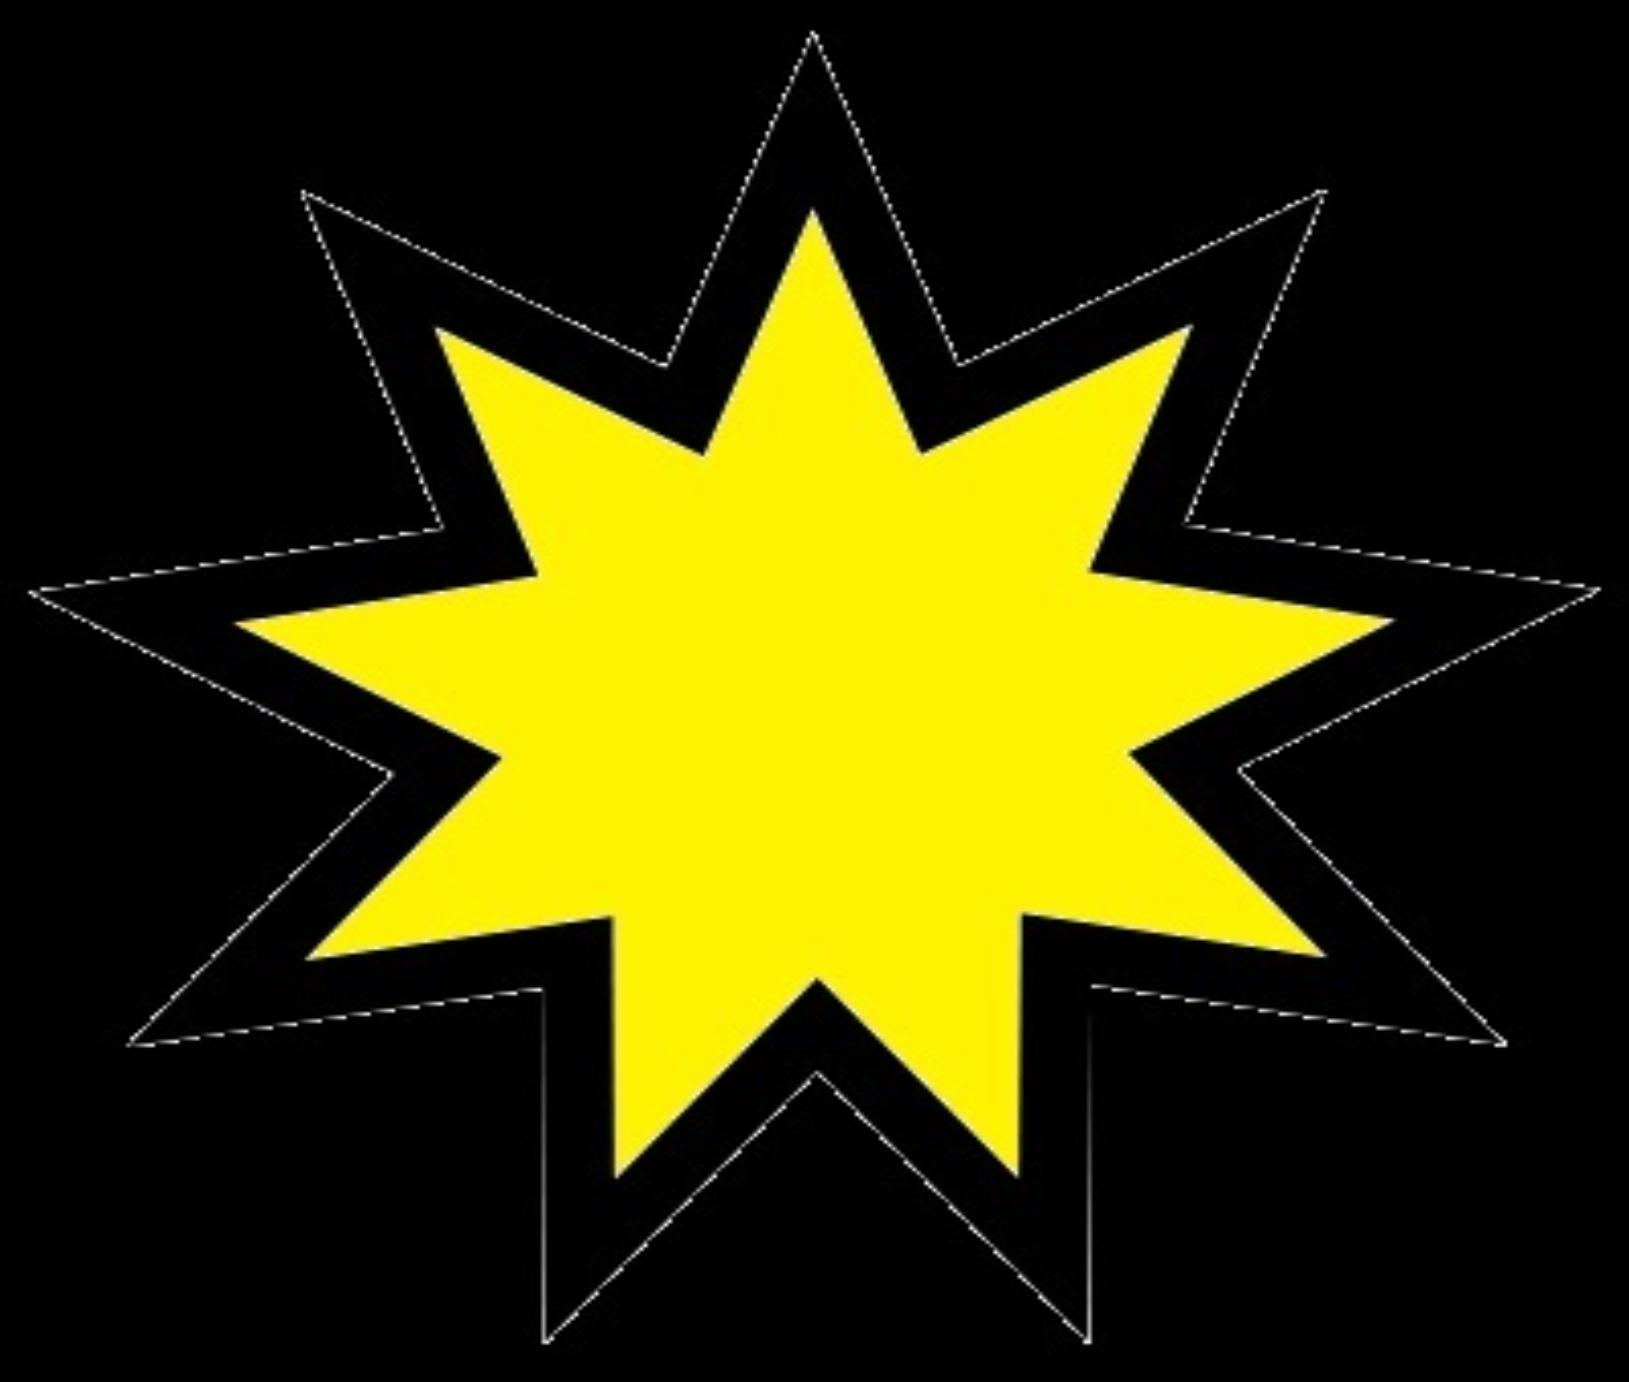 Nine pointed bright yellow stars for wisdomgame.org